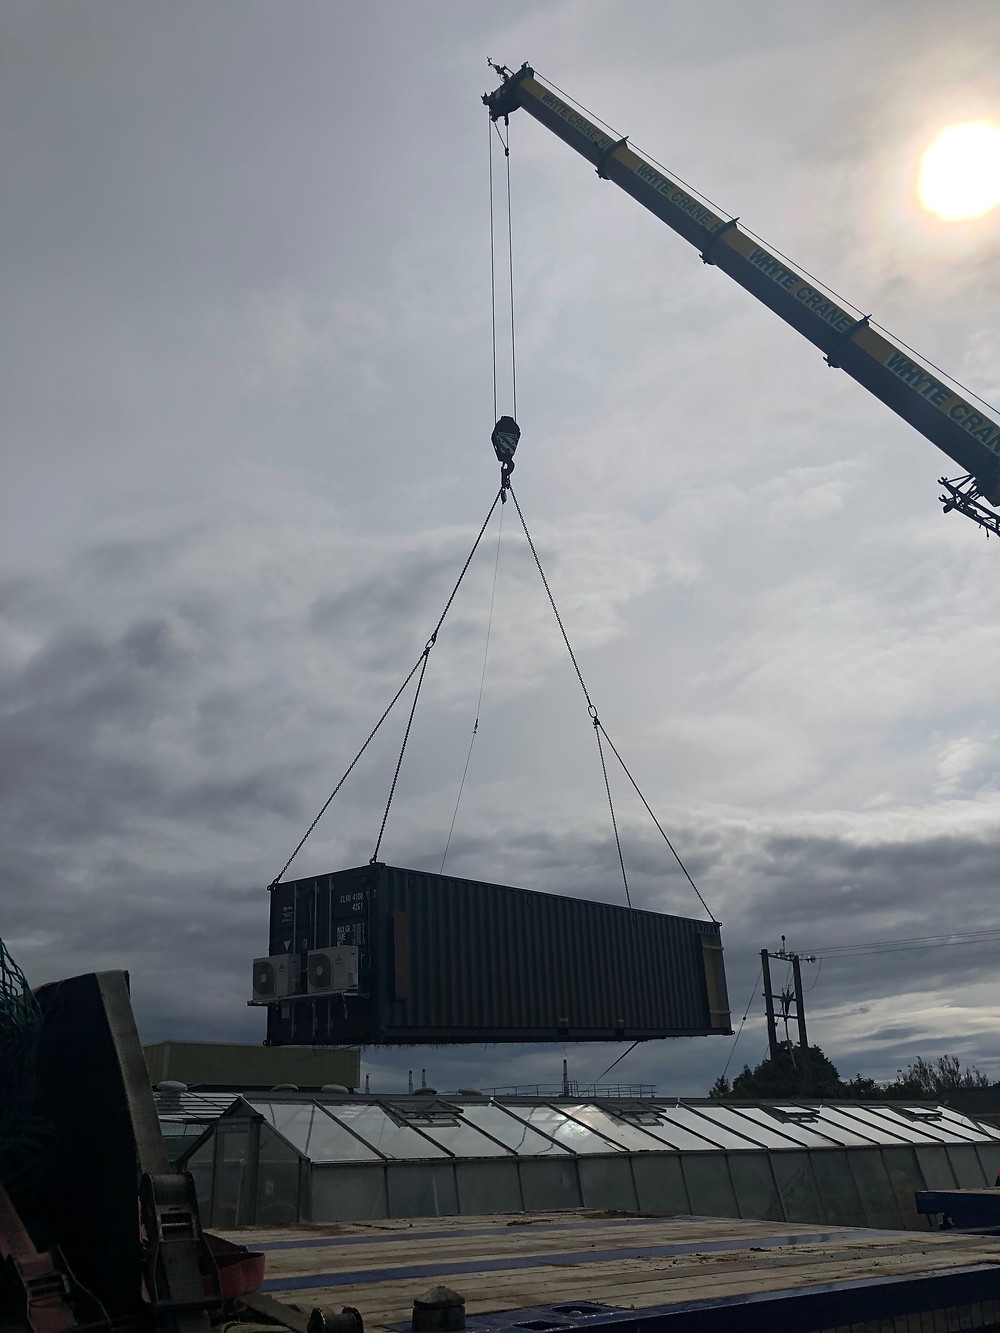 Shipping container vertical farm being lifted into place